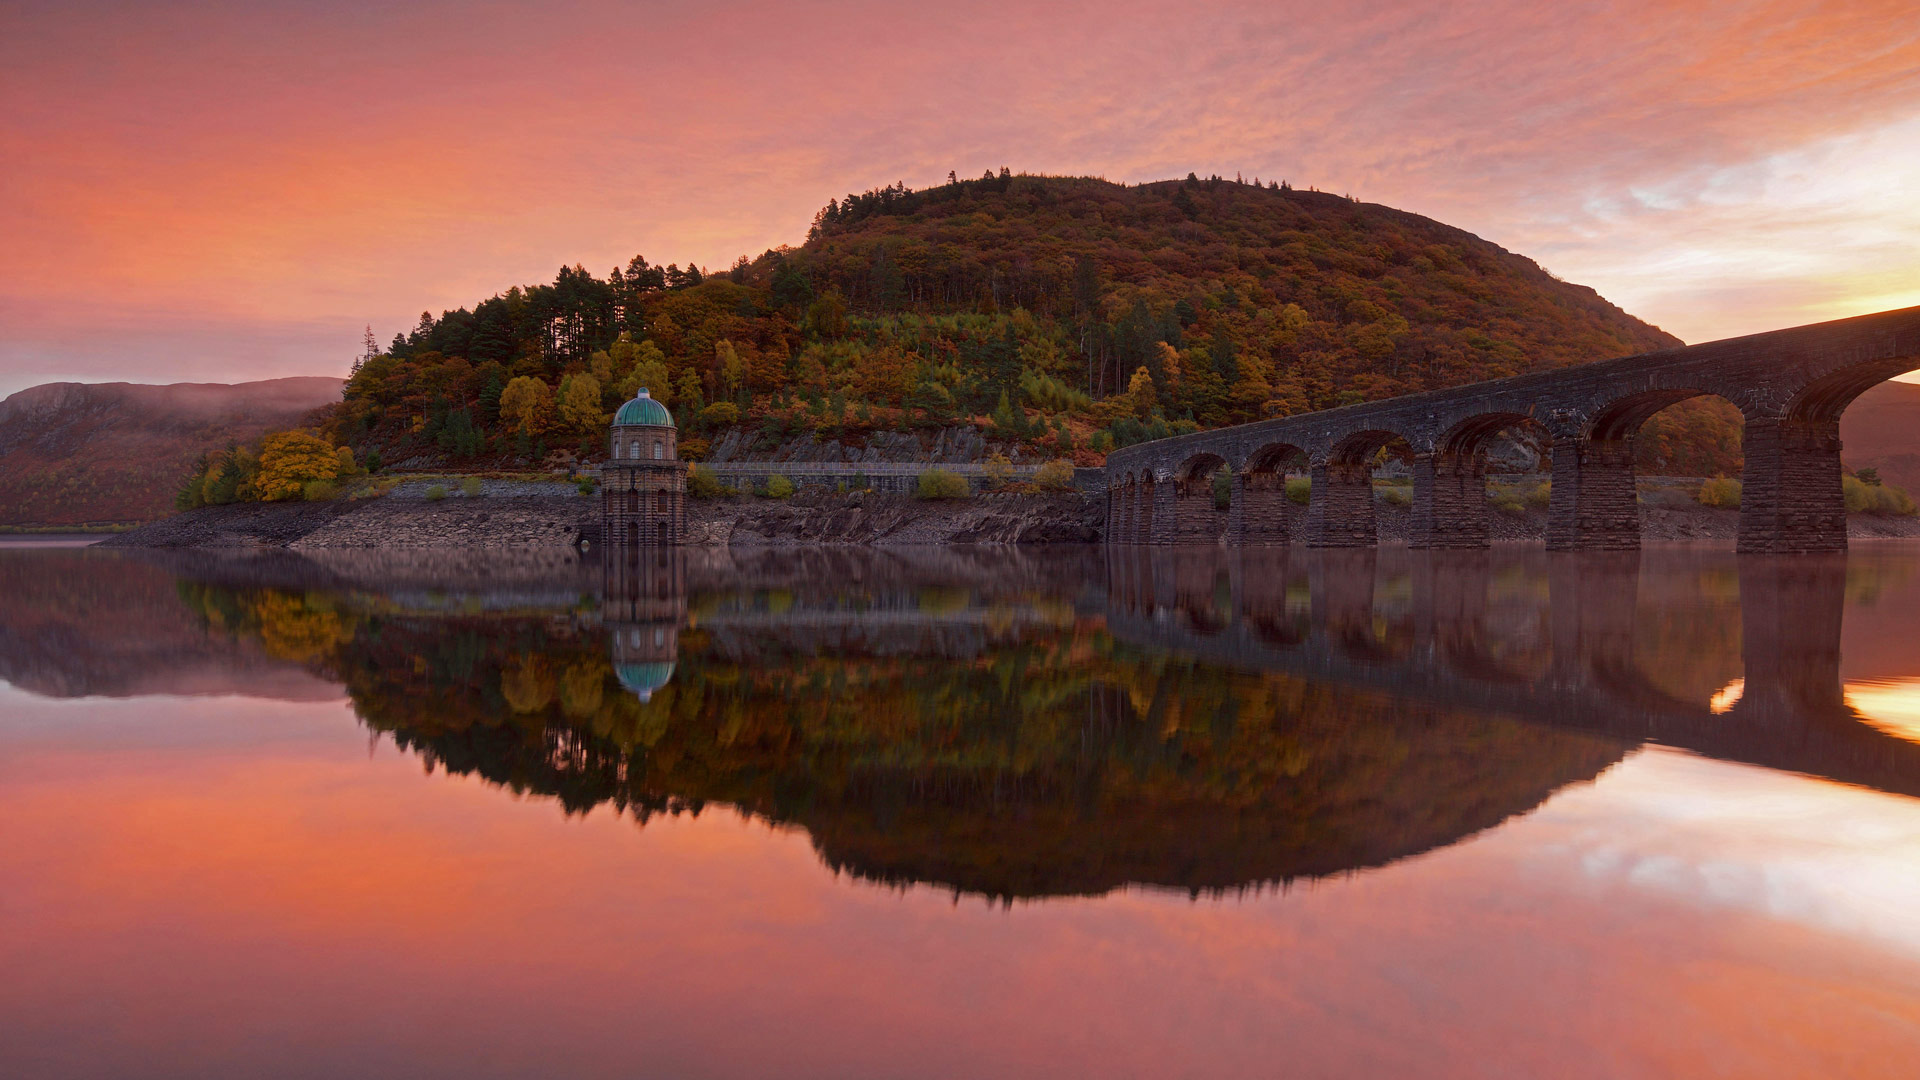 Garreg Ddu Dam in the Elan Valley of Wales (© Stephen Taylor/Alamy)